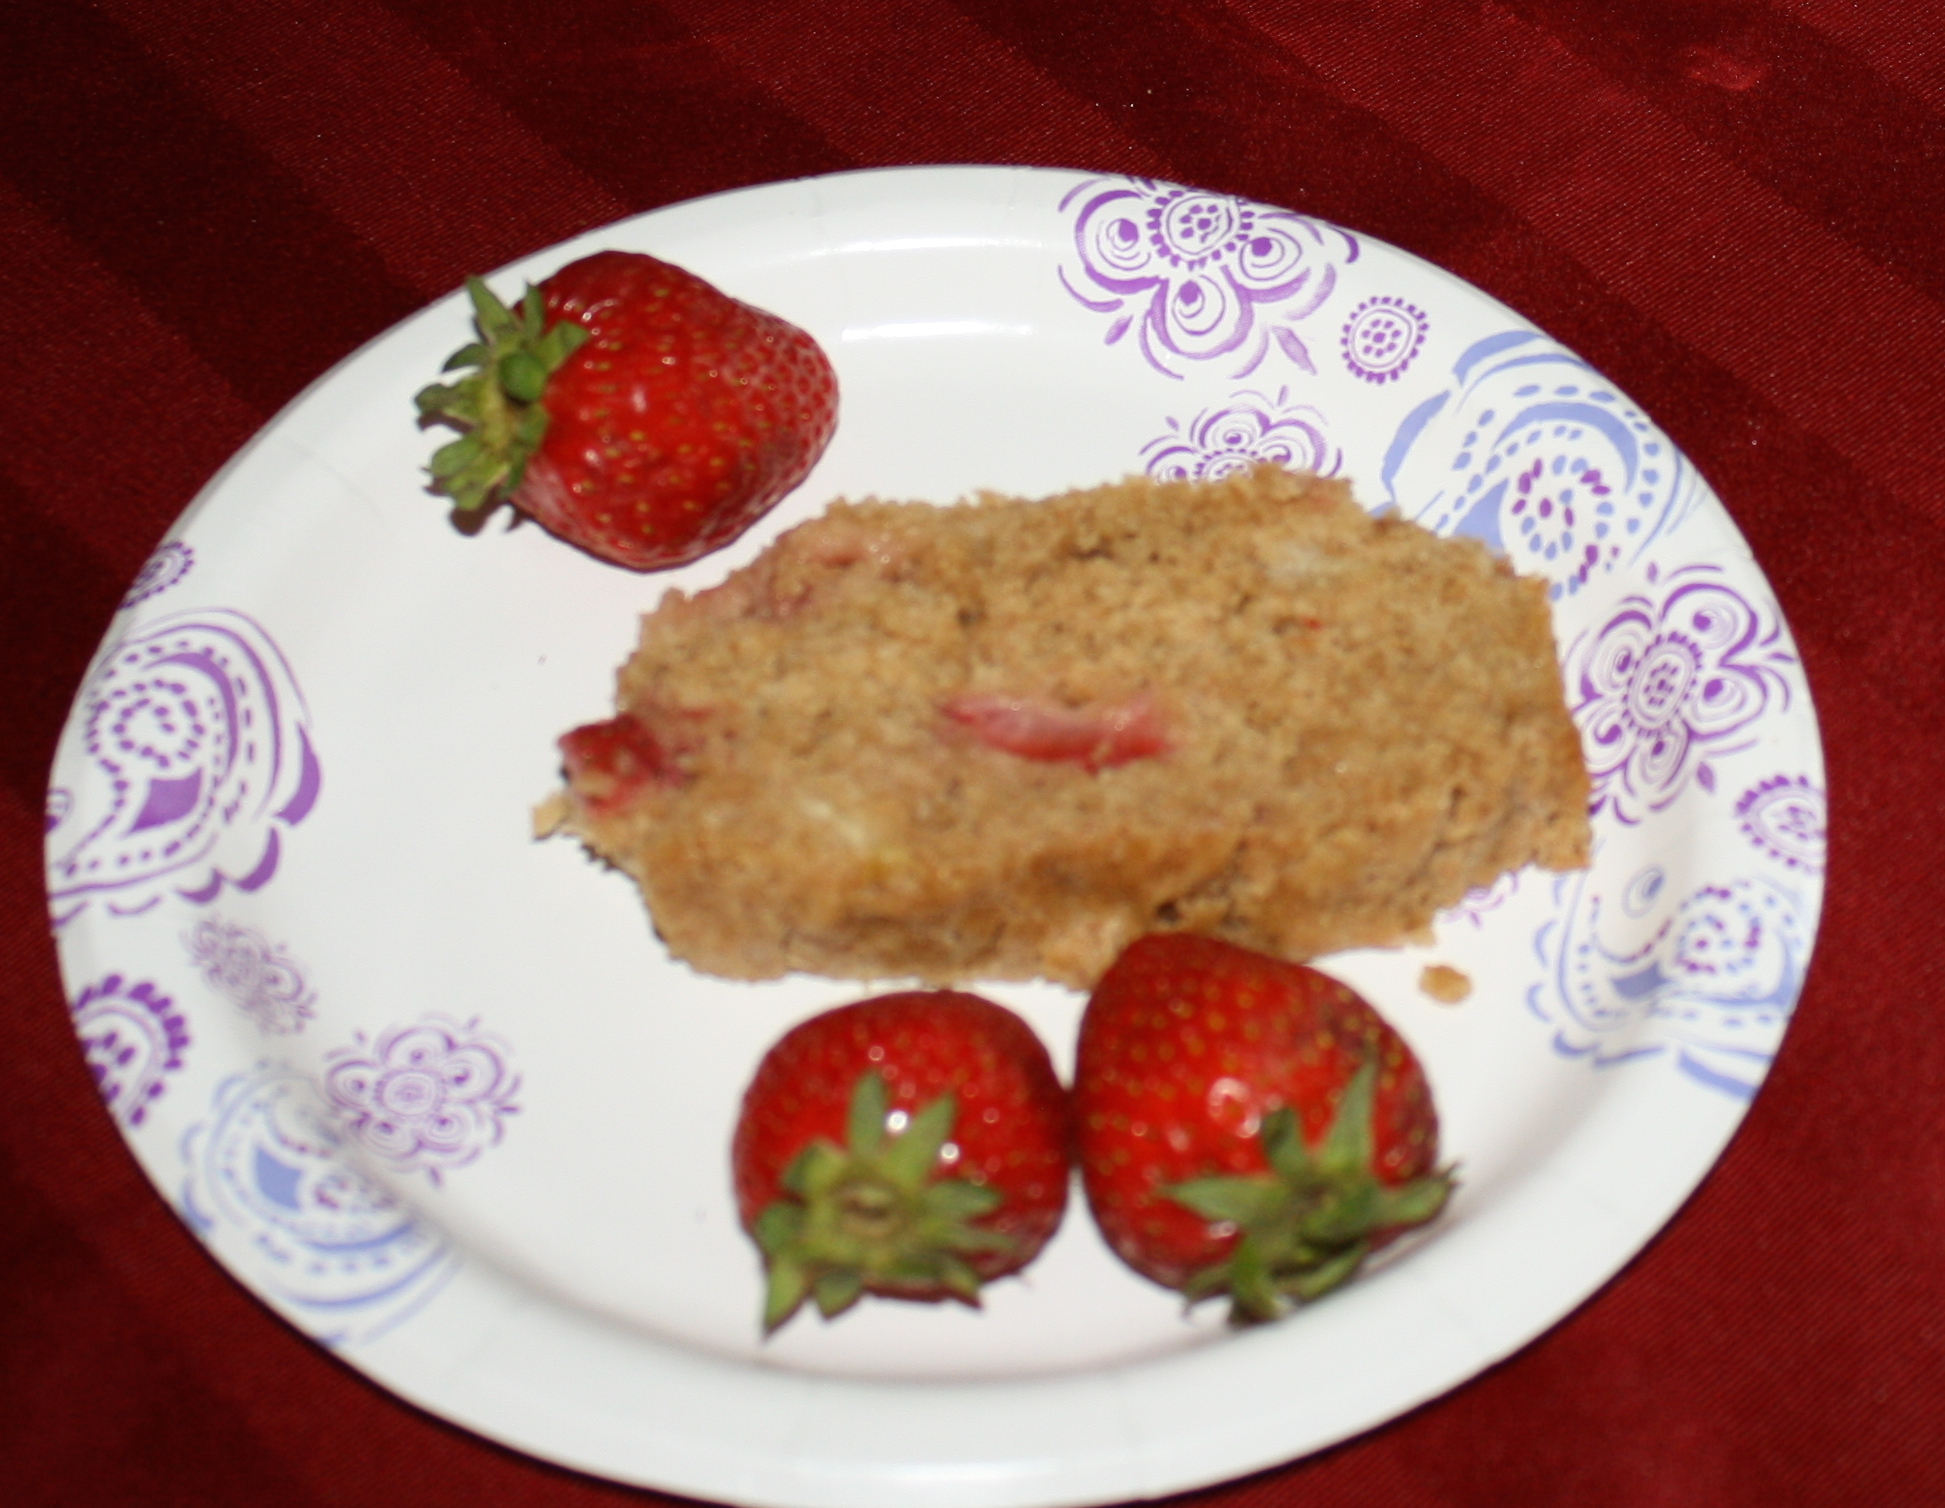 a slice of strawberry banana bread garnished with three fresh strawberries